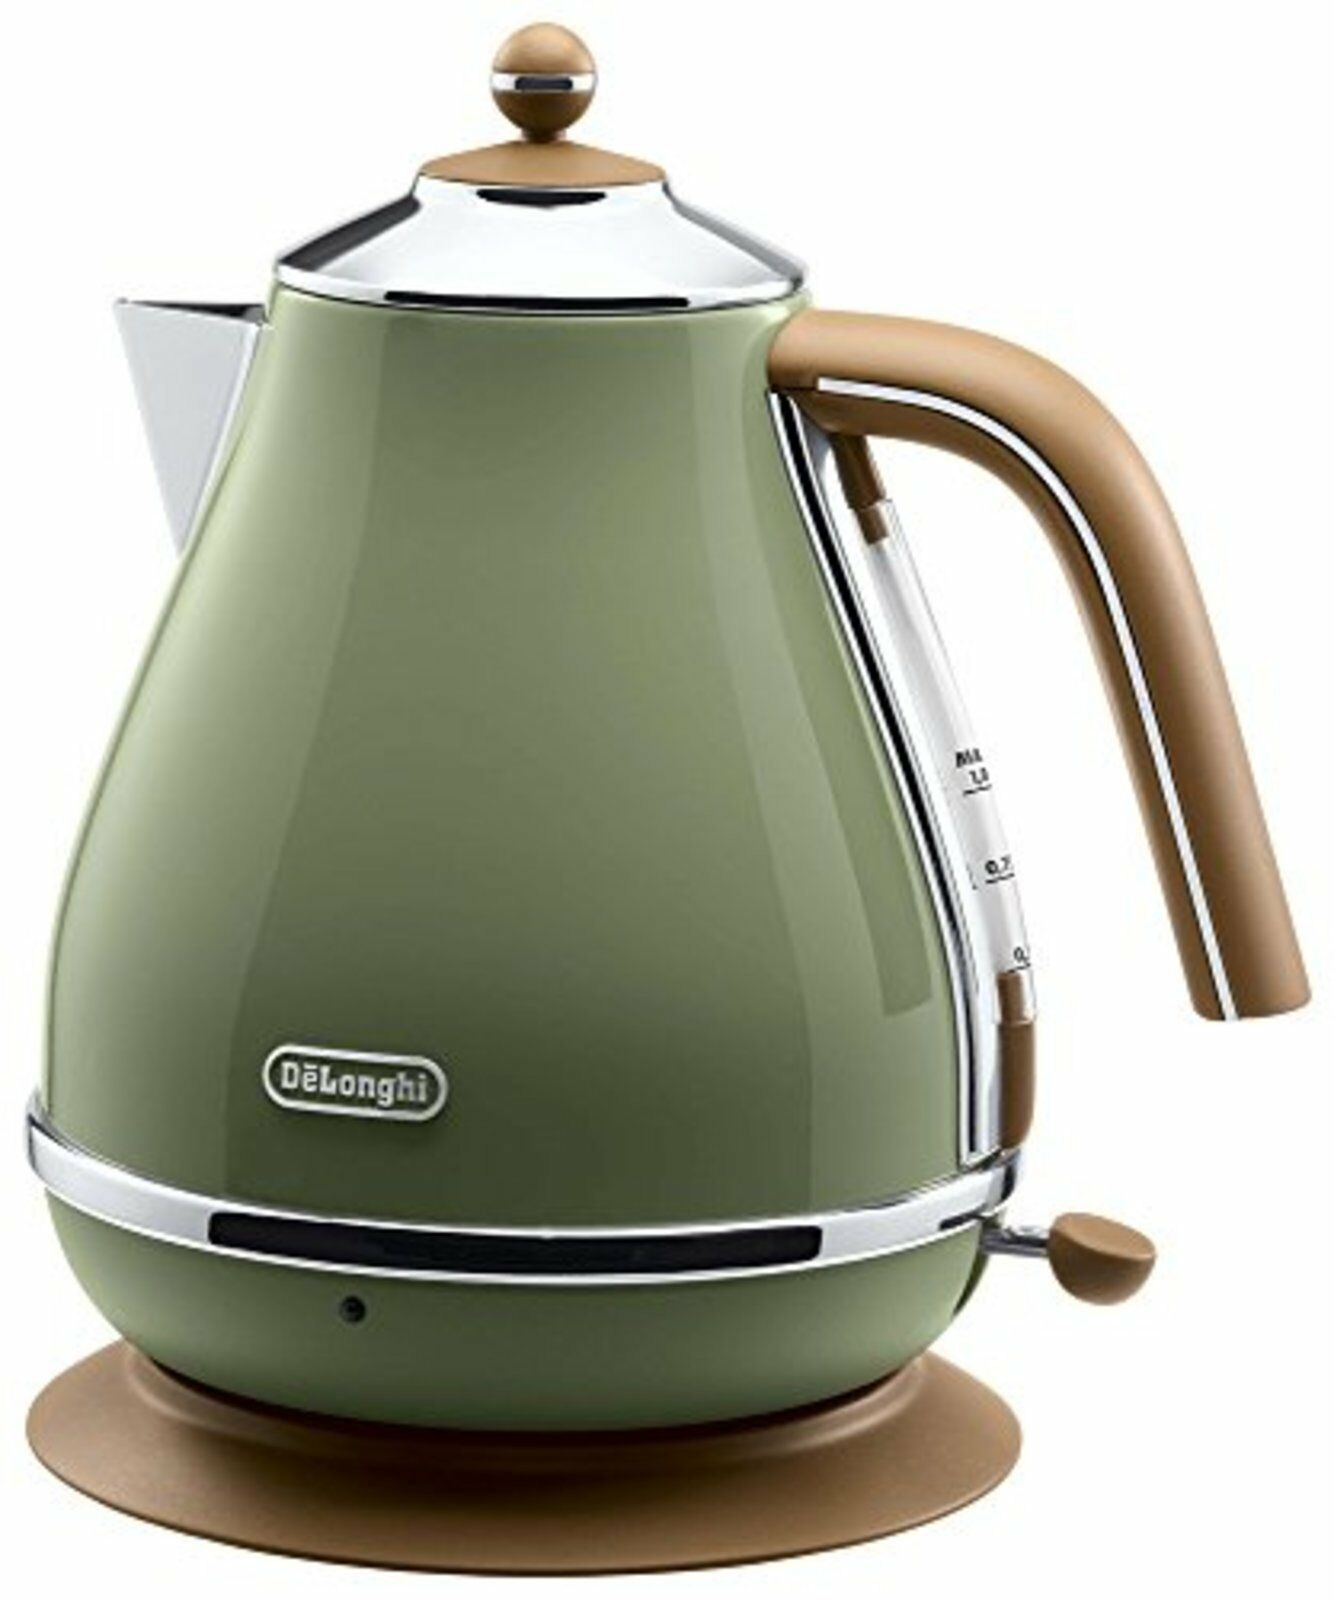 DeLonghi DeLonghi DeLonghi electric kettle 1.0L olive Grün DeLonghi Aikona vintage collect. F S a6f3e6